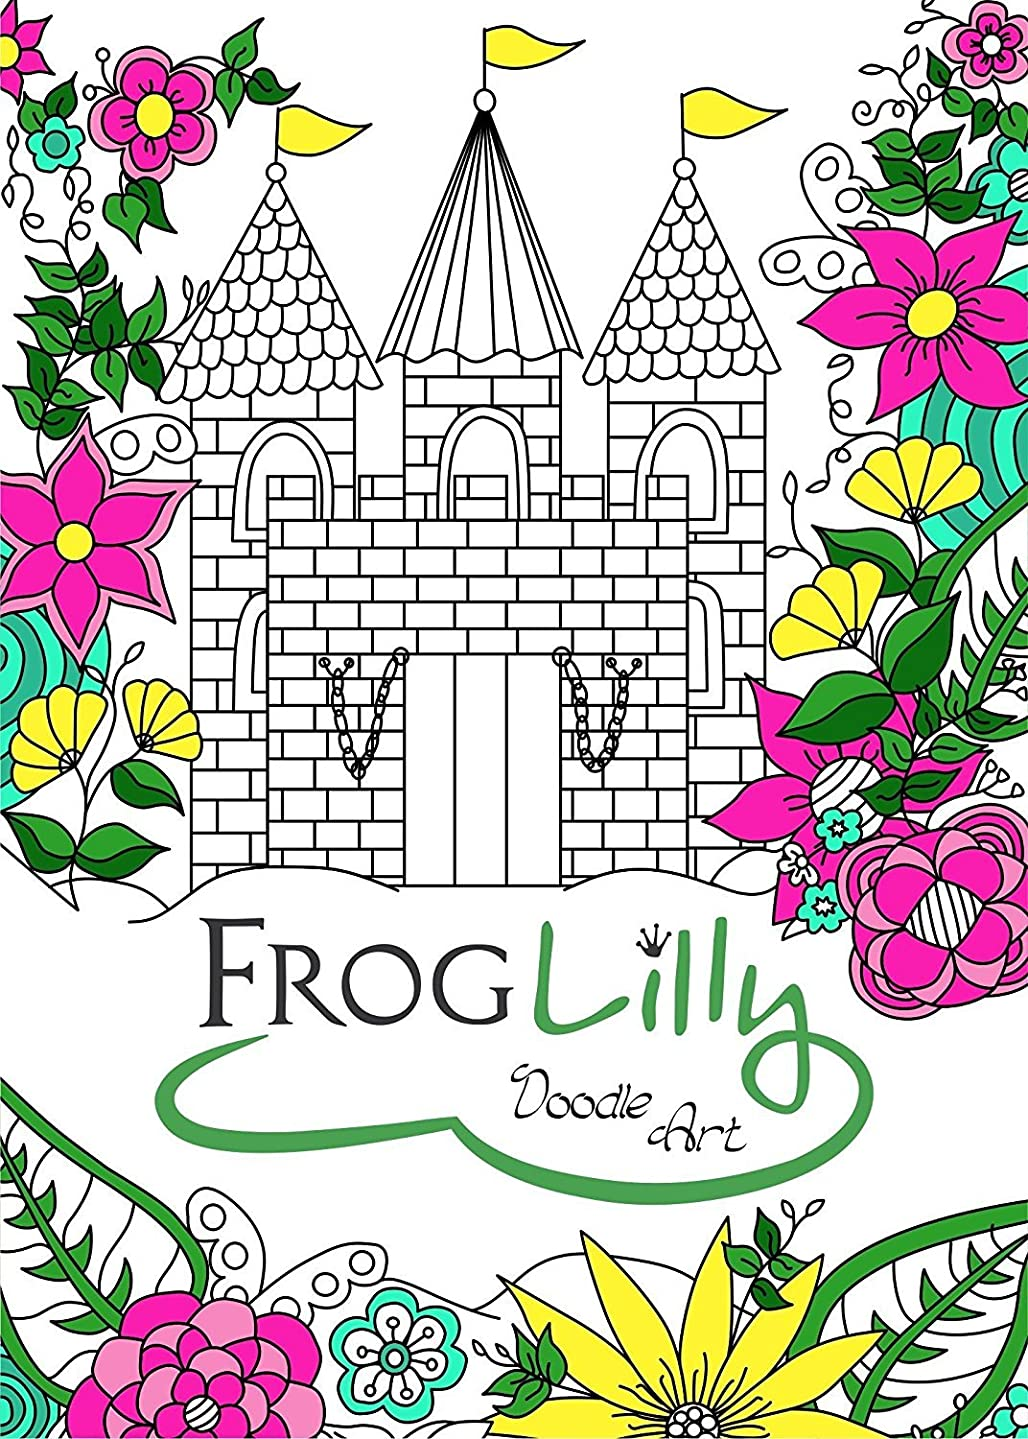 FrogLilly Doodle Art Adult Coloring Book w/ Unique Lay Flat Pages - Travel Size for Anti Stress and Fun - 50 Pages Floral, Nature, Animal, Holiday and Mandala Type Designs